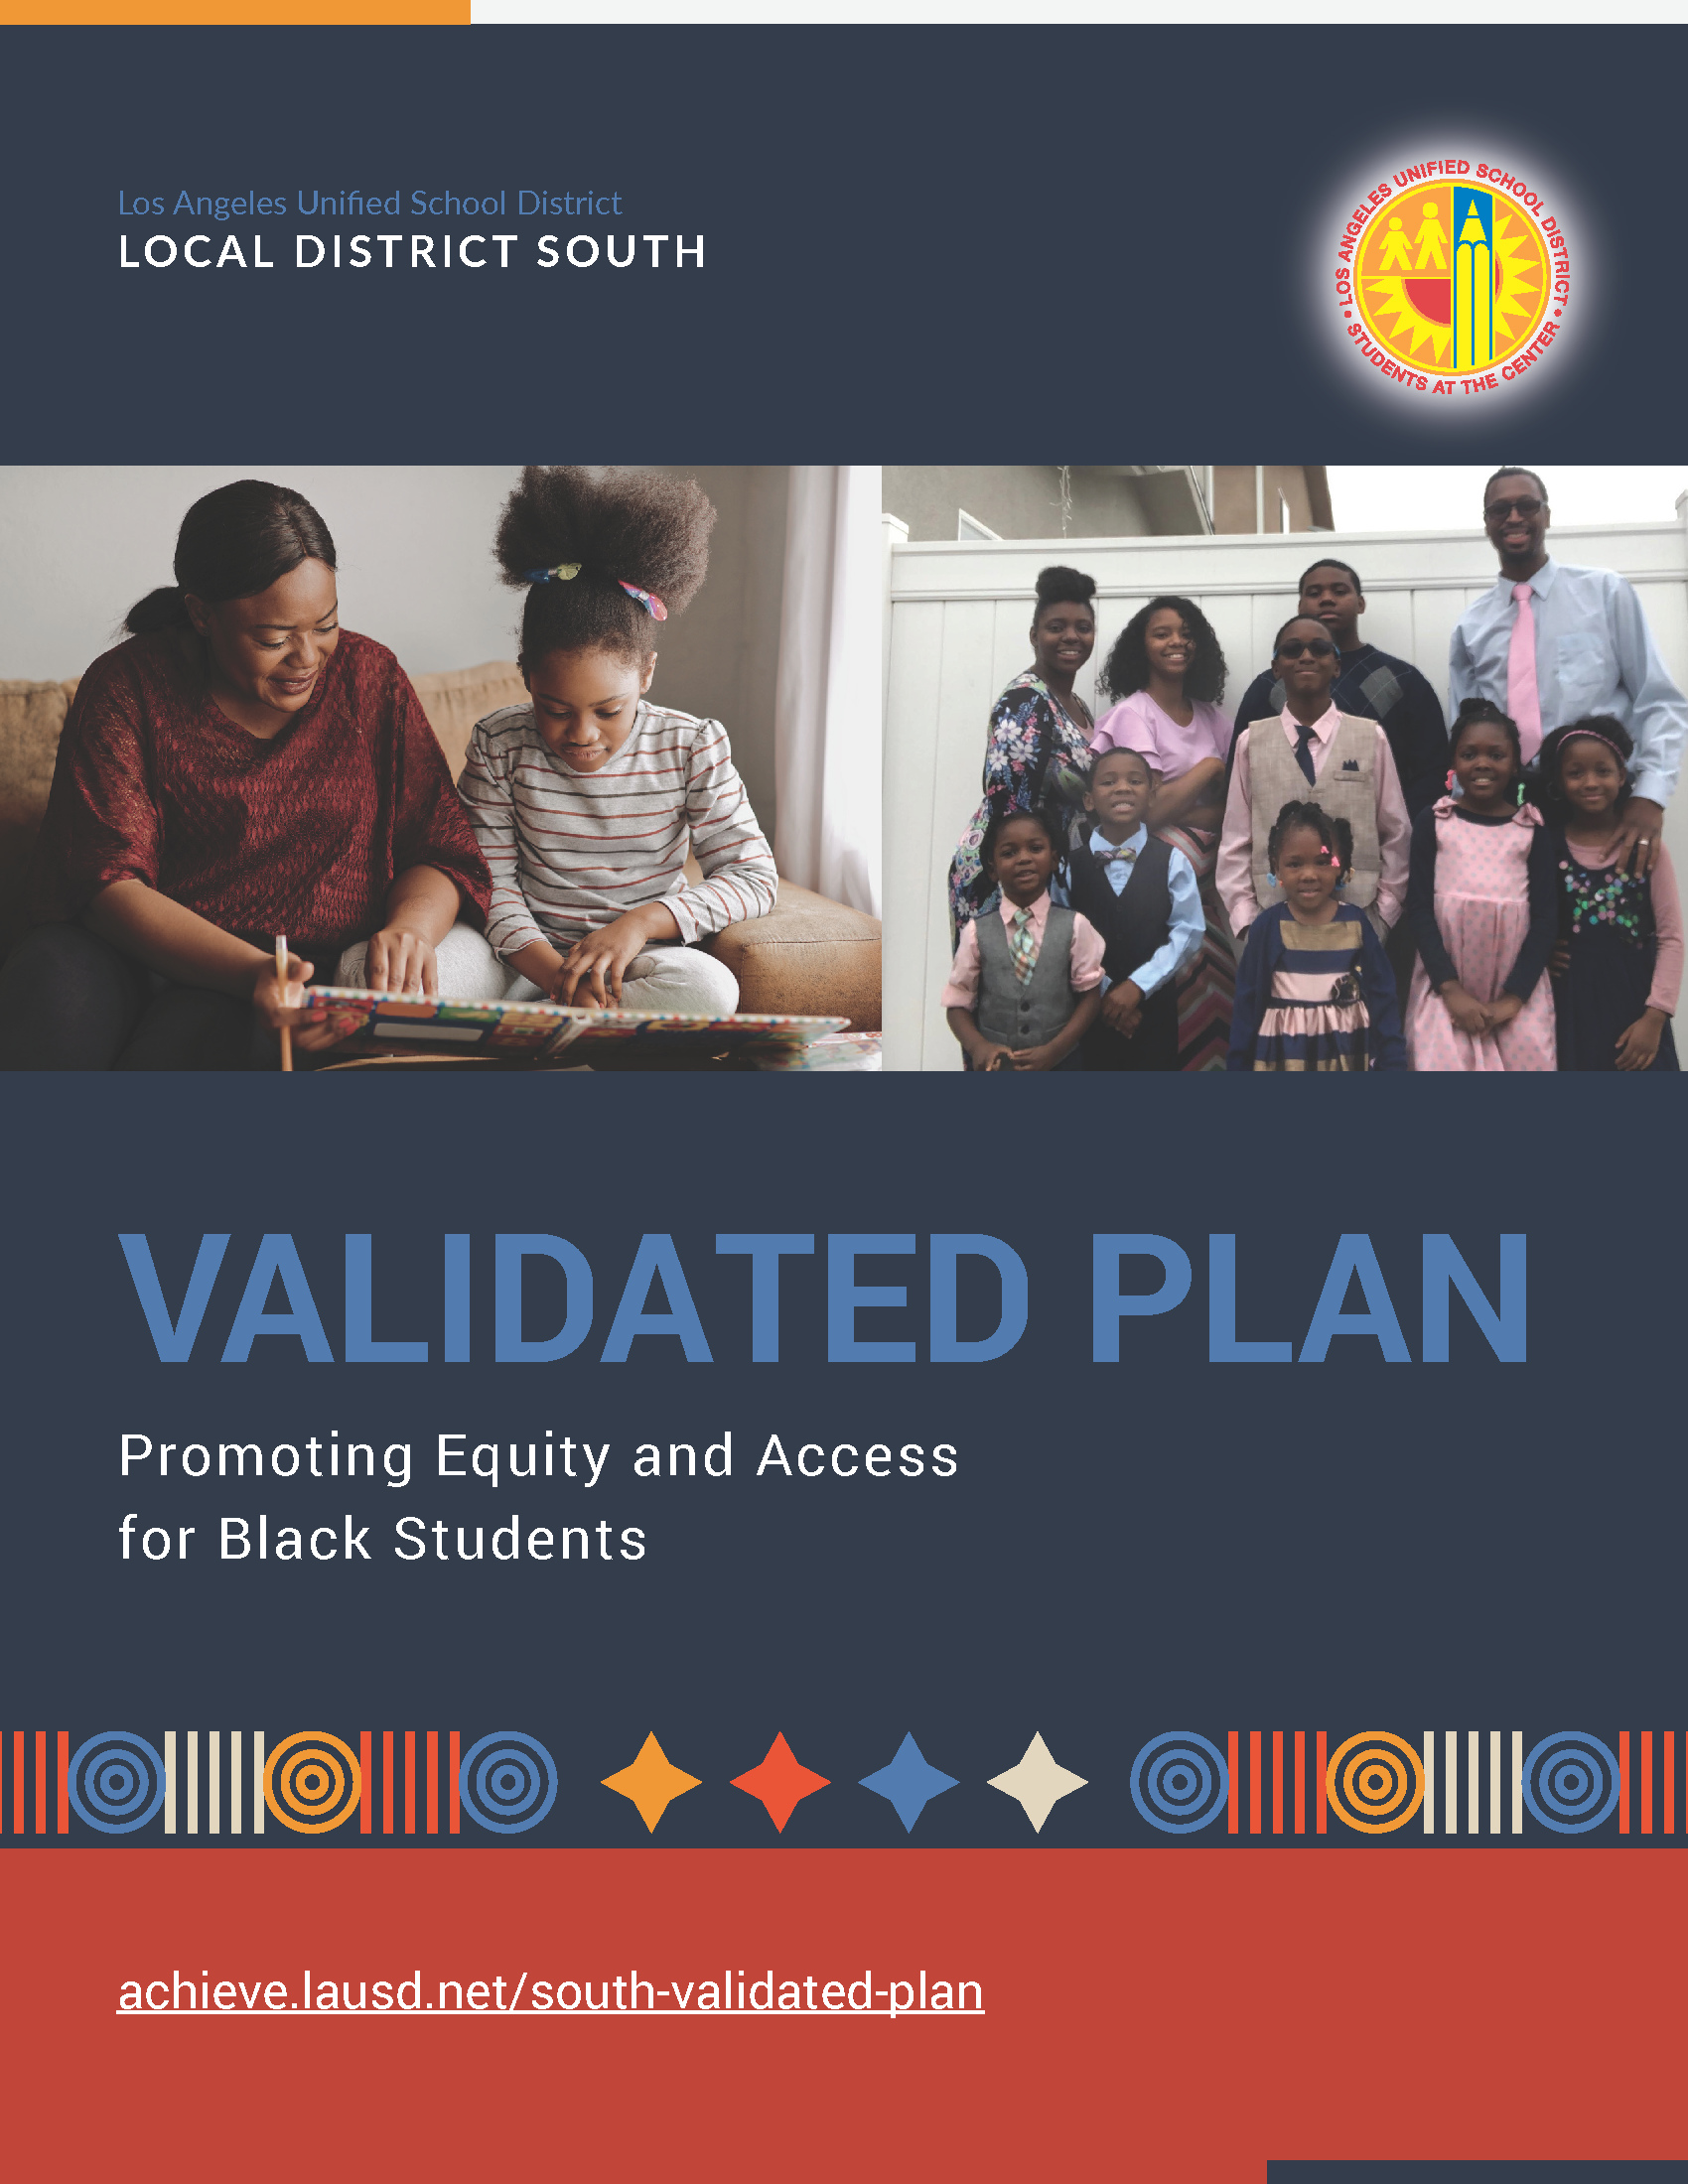 Validated Plan Cover Page (graphic)